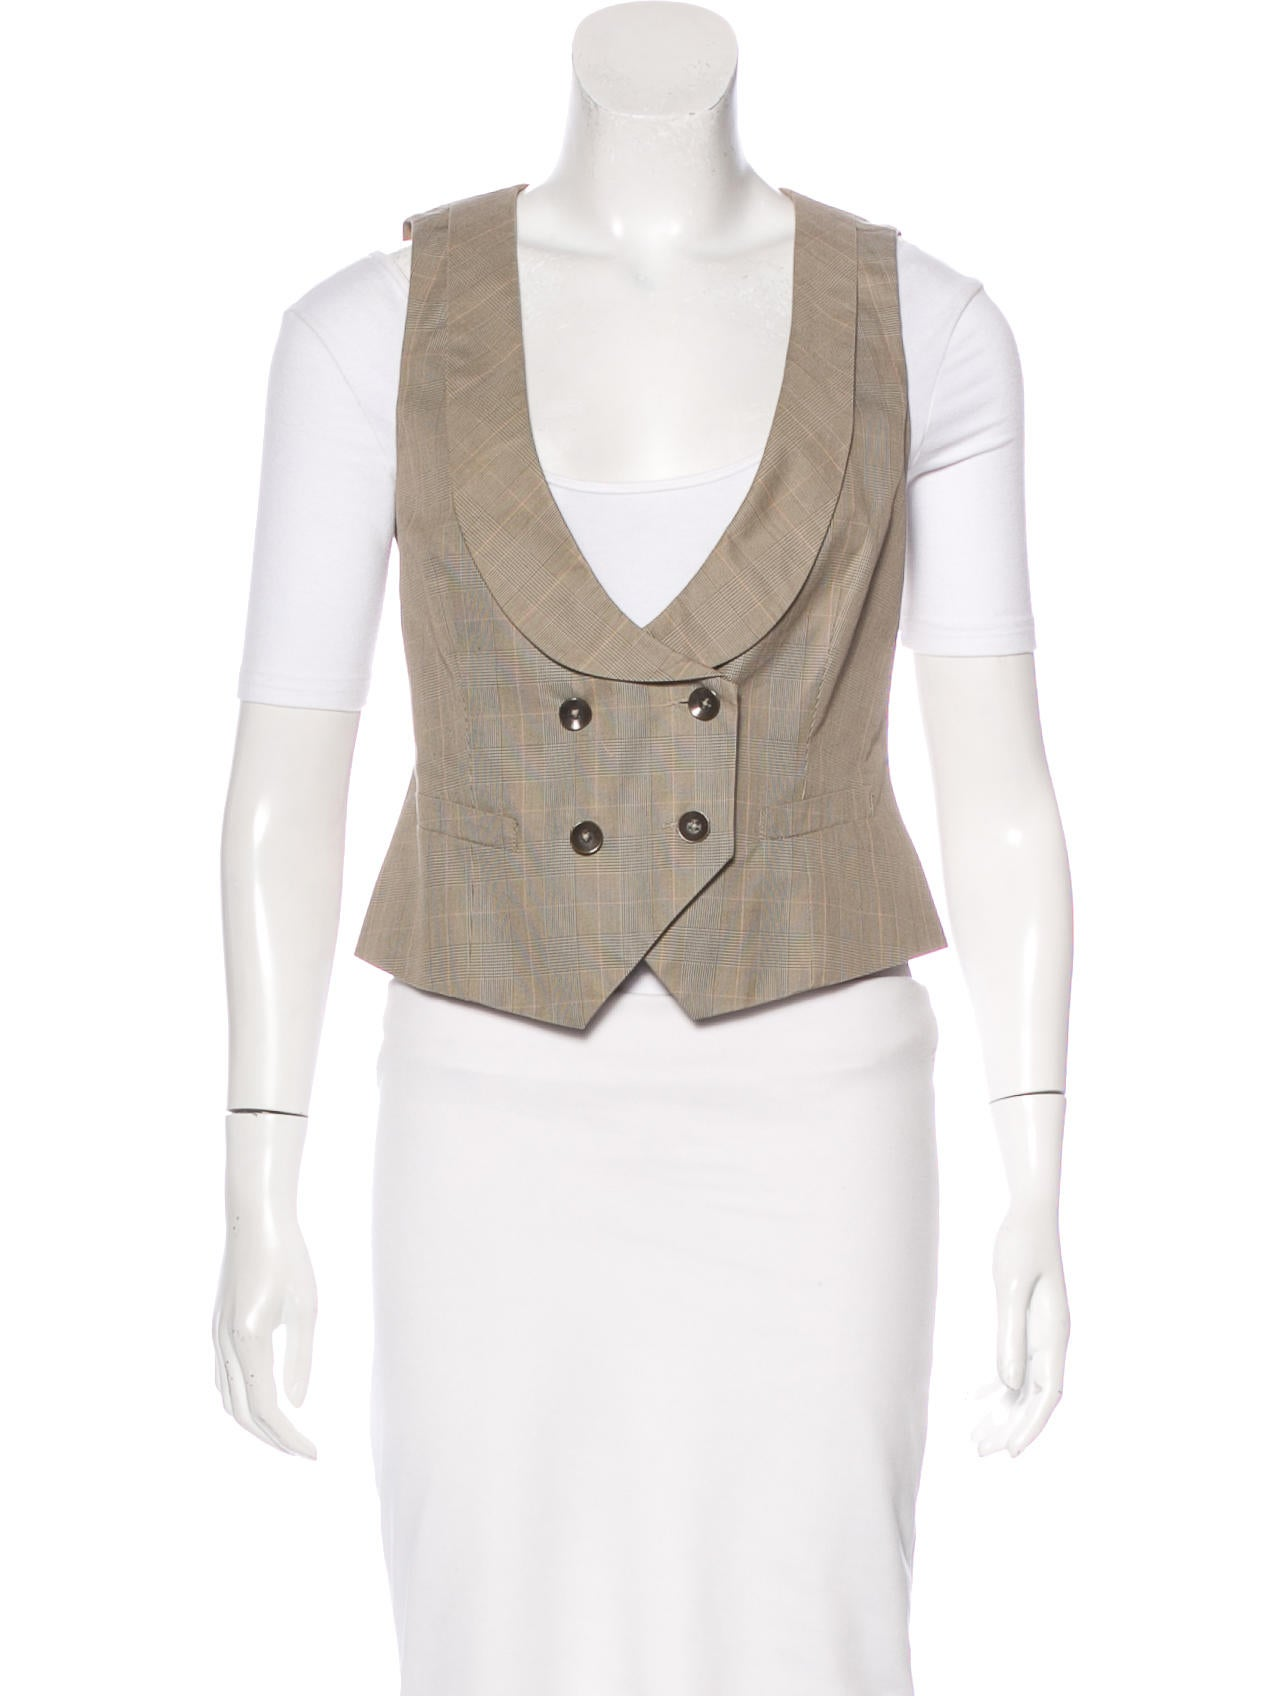 Find the very best handcrafted men's wool vests at Johnson Woolen Mills, featuring wool hunting vests, plaid wool vest, and also casual vest for women.